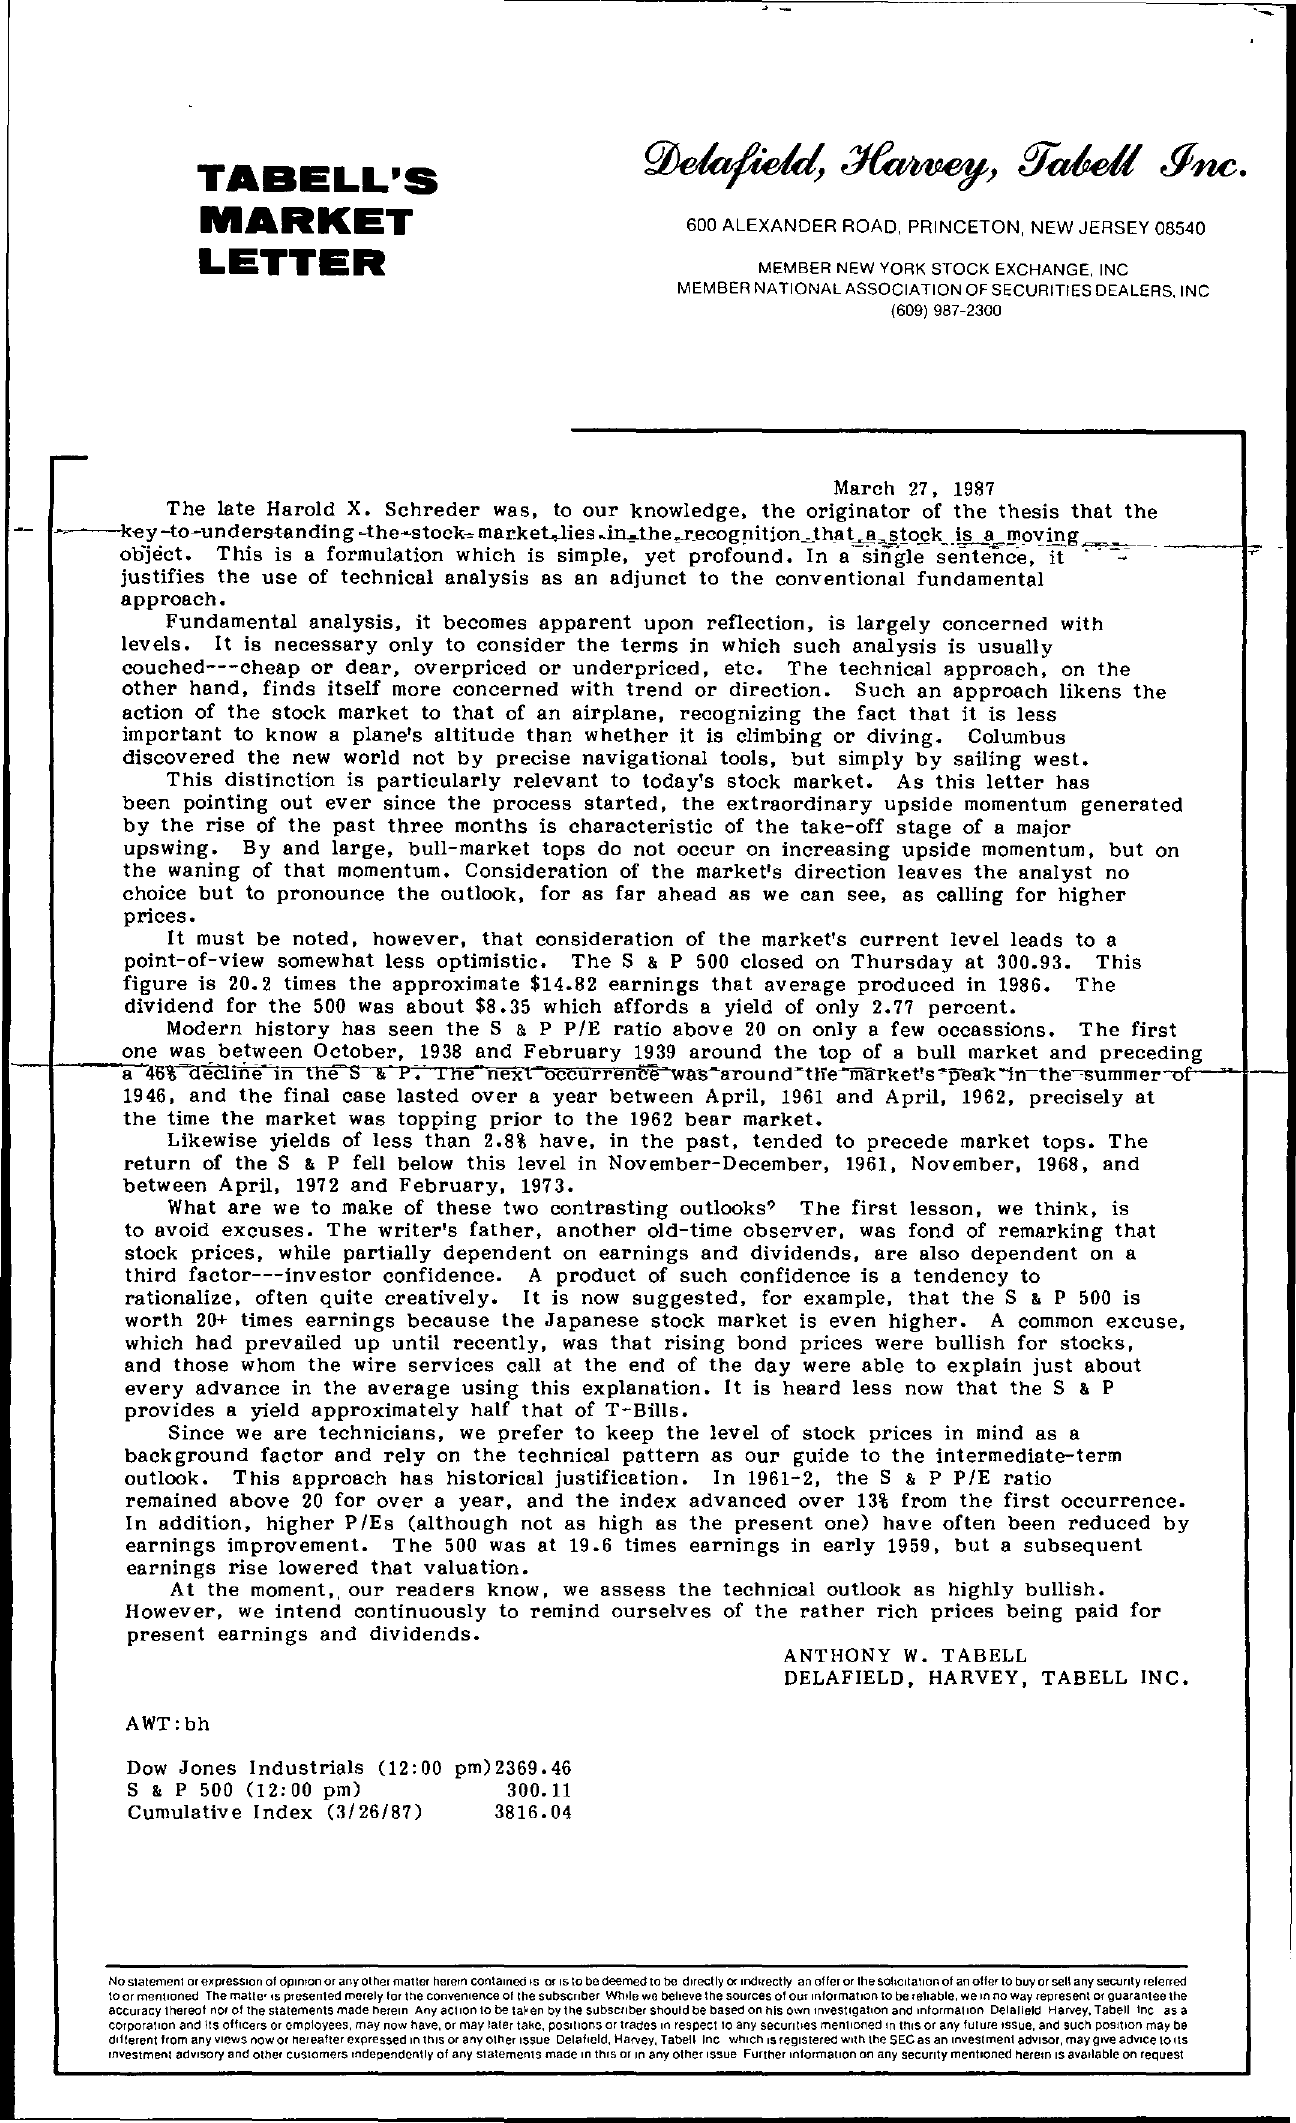 Tabell's Market Letter - March 27, 1987